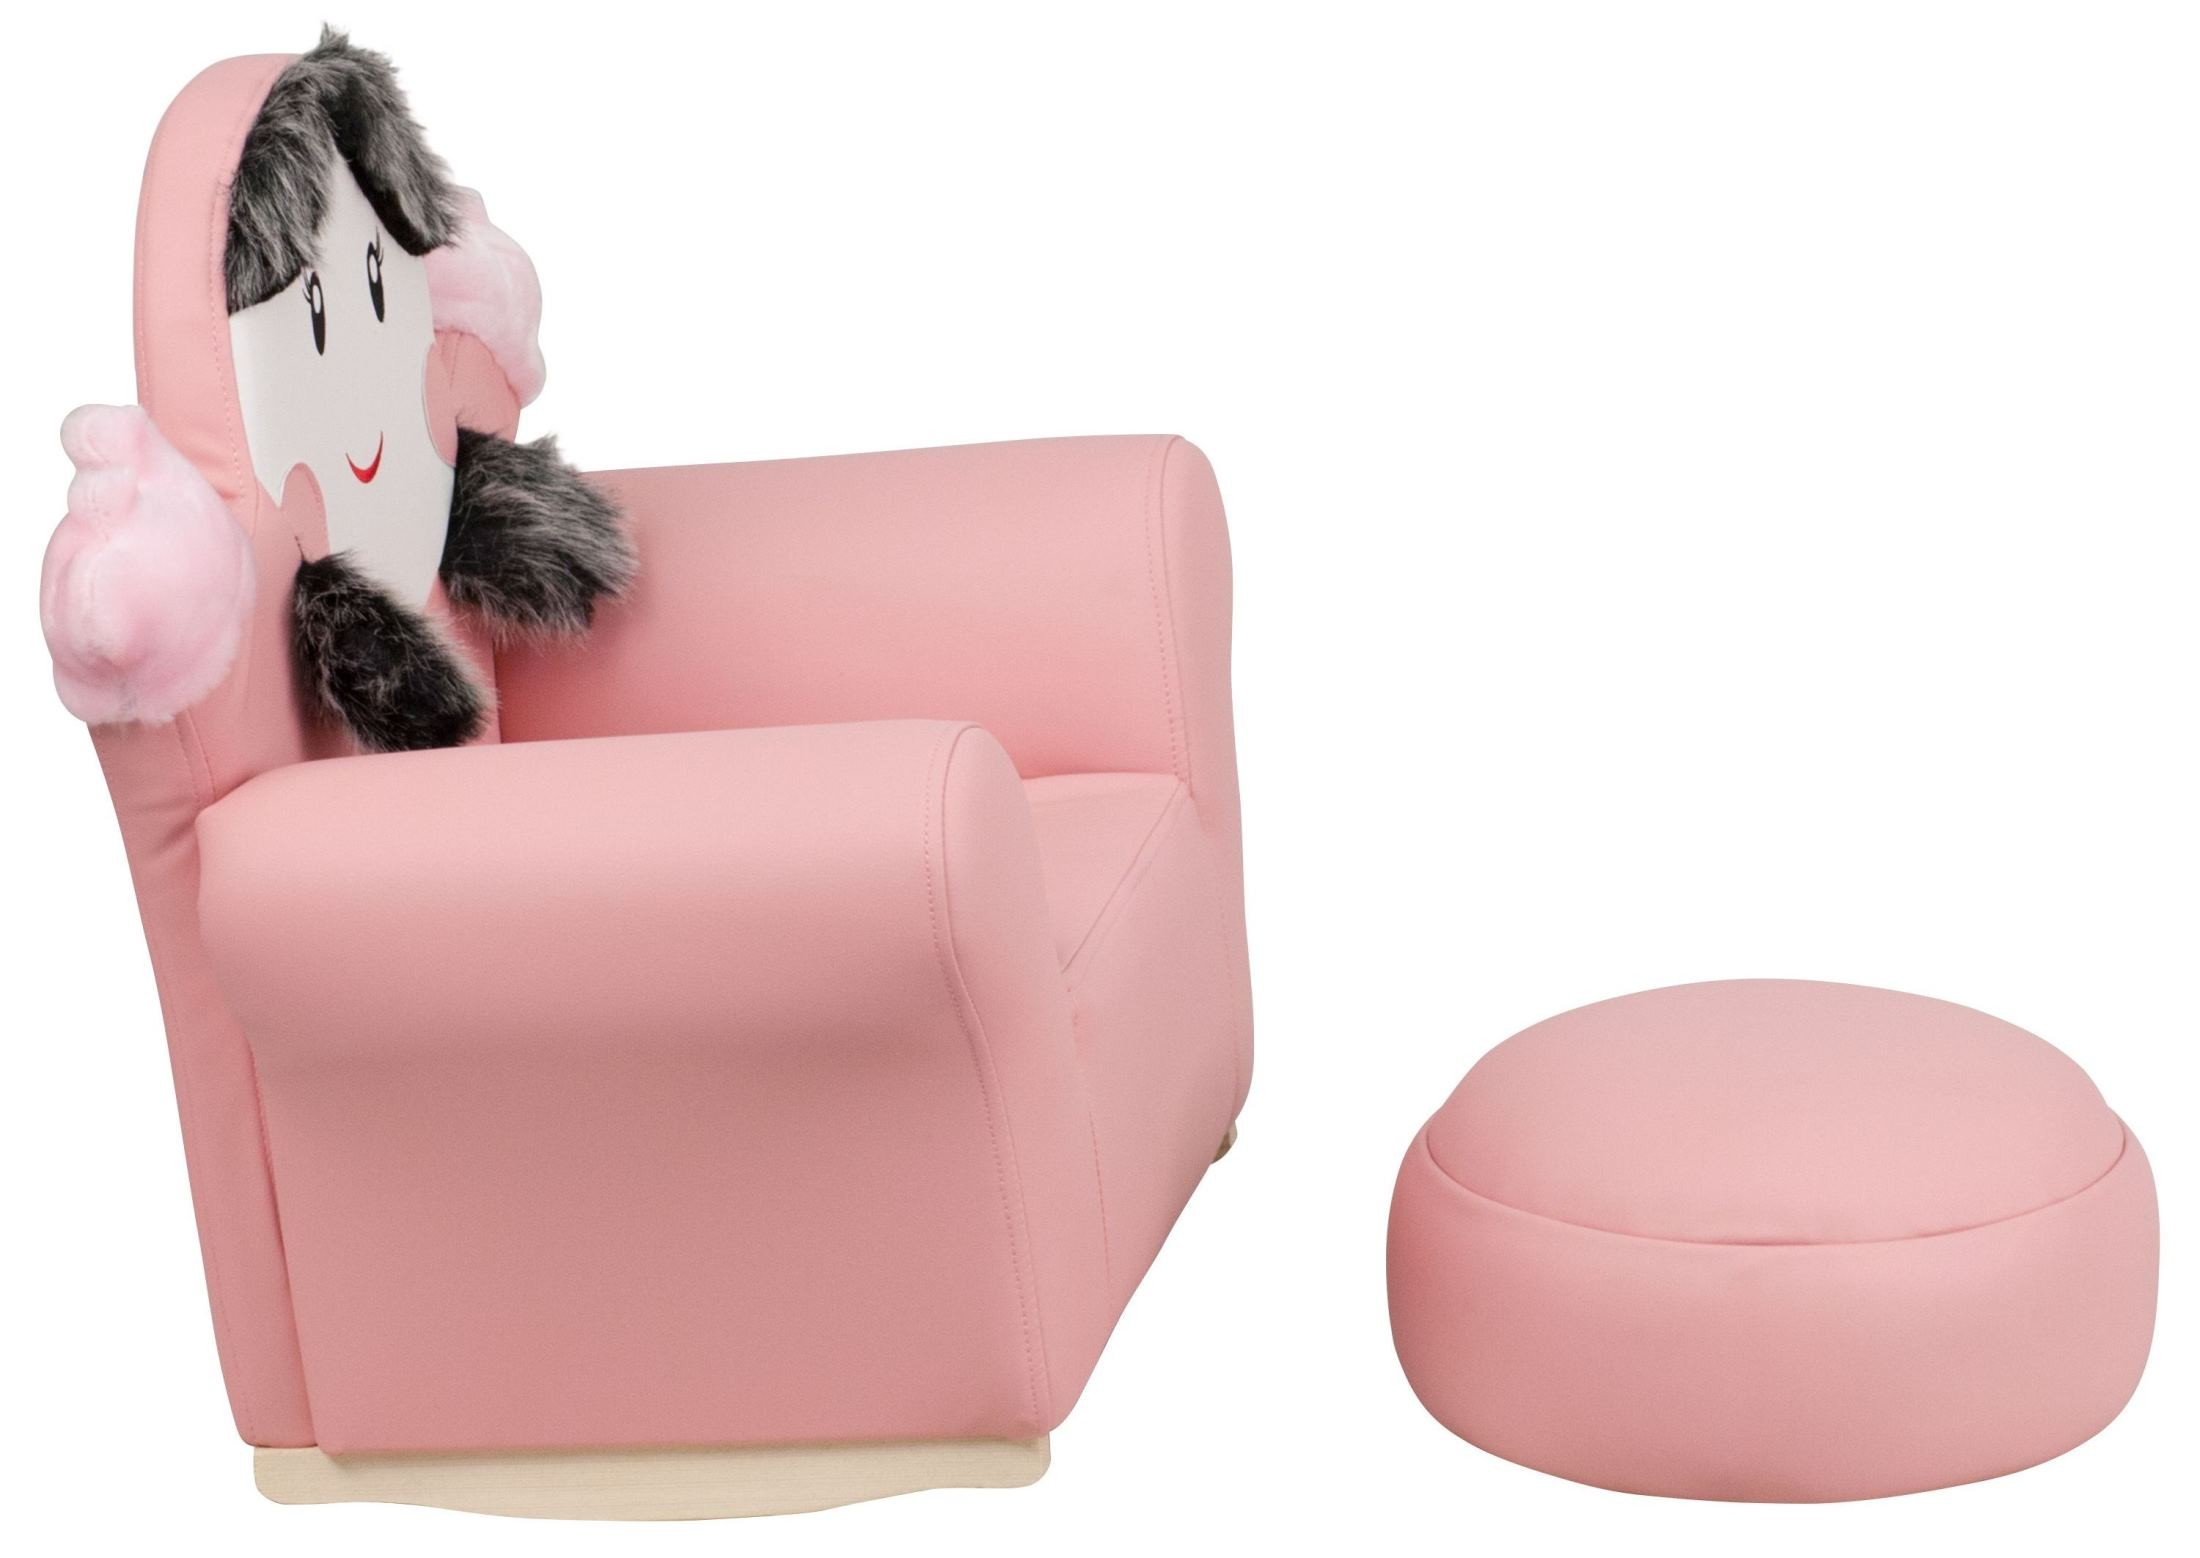 little girl rocking chair recliner chairs fabric upholstery kids pink rocker and footrest from